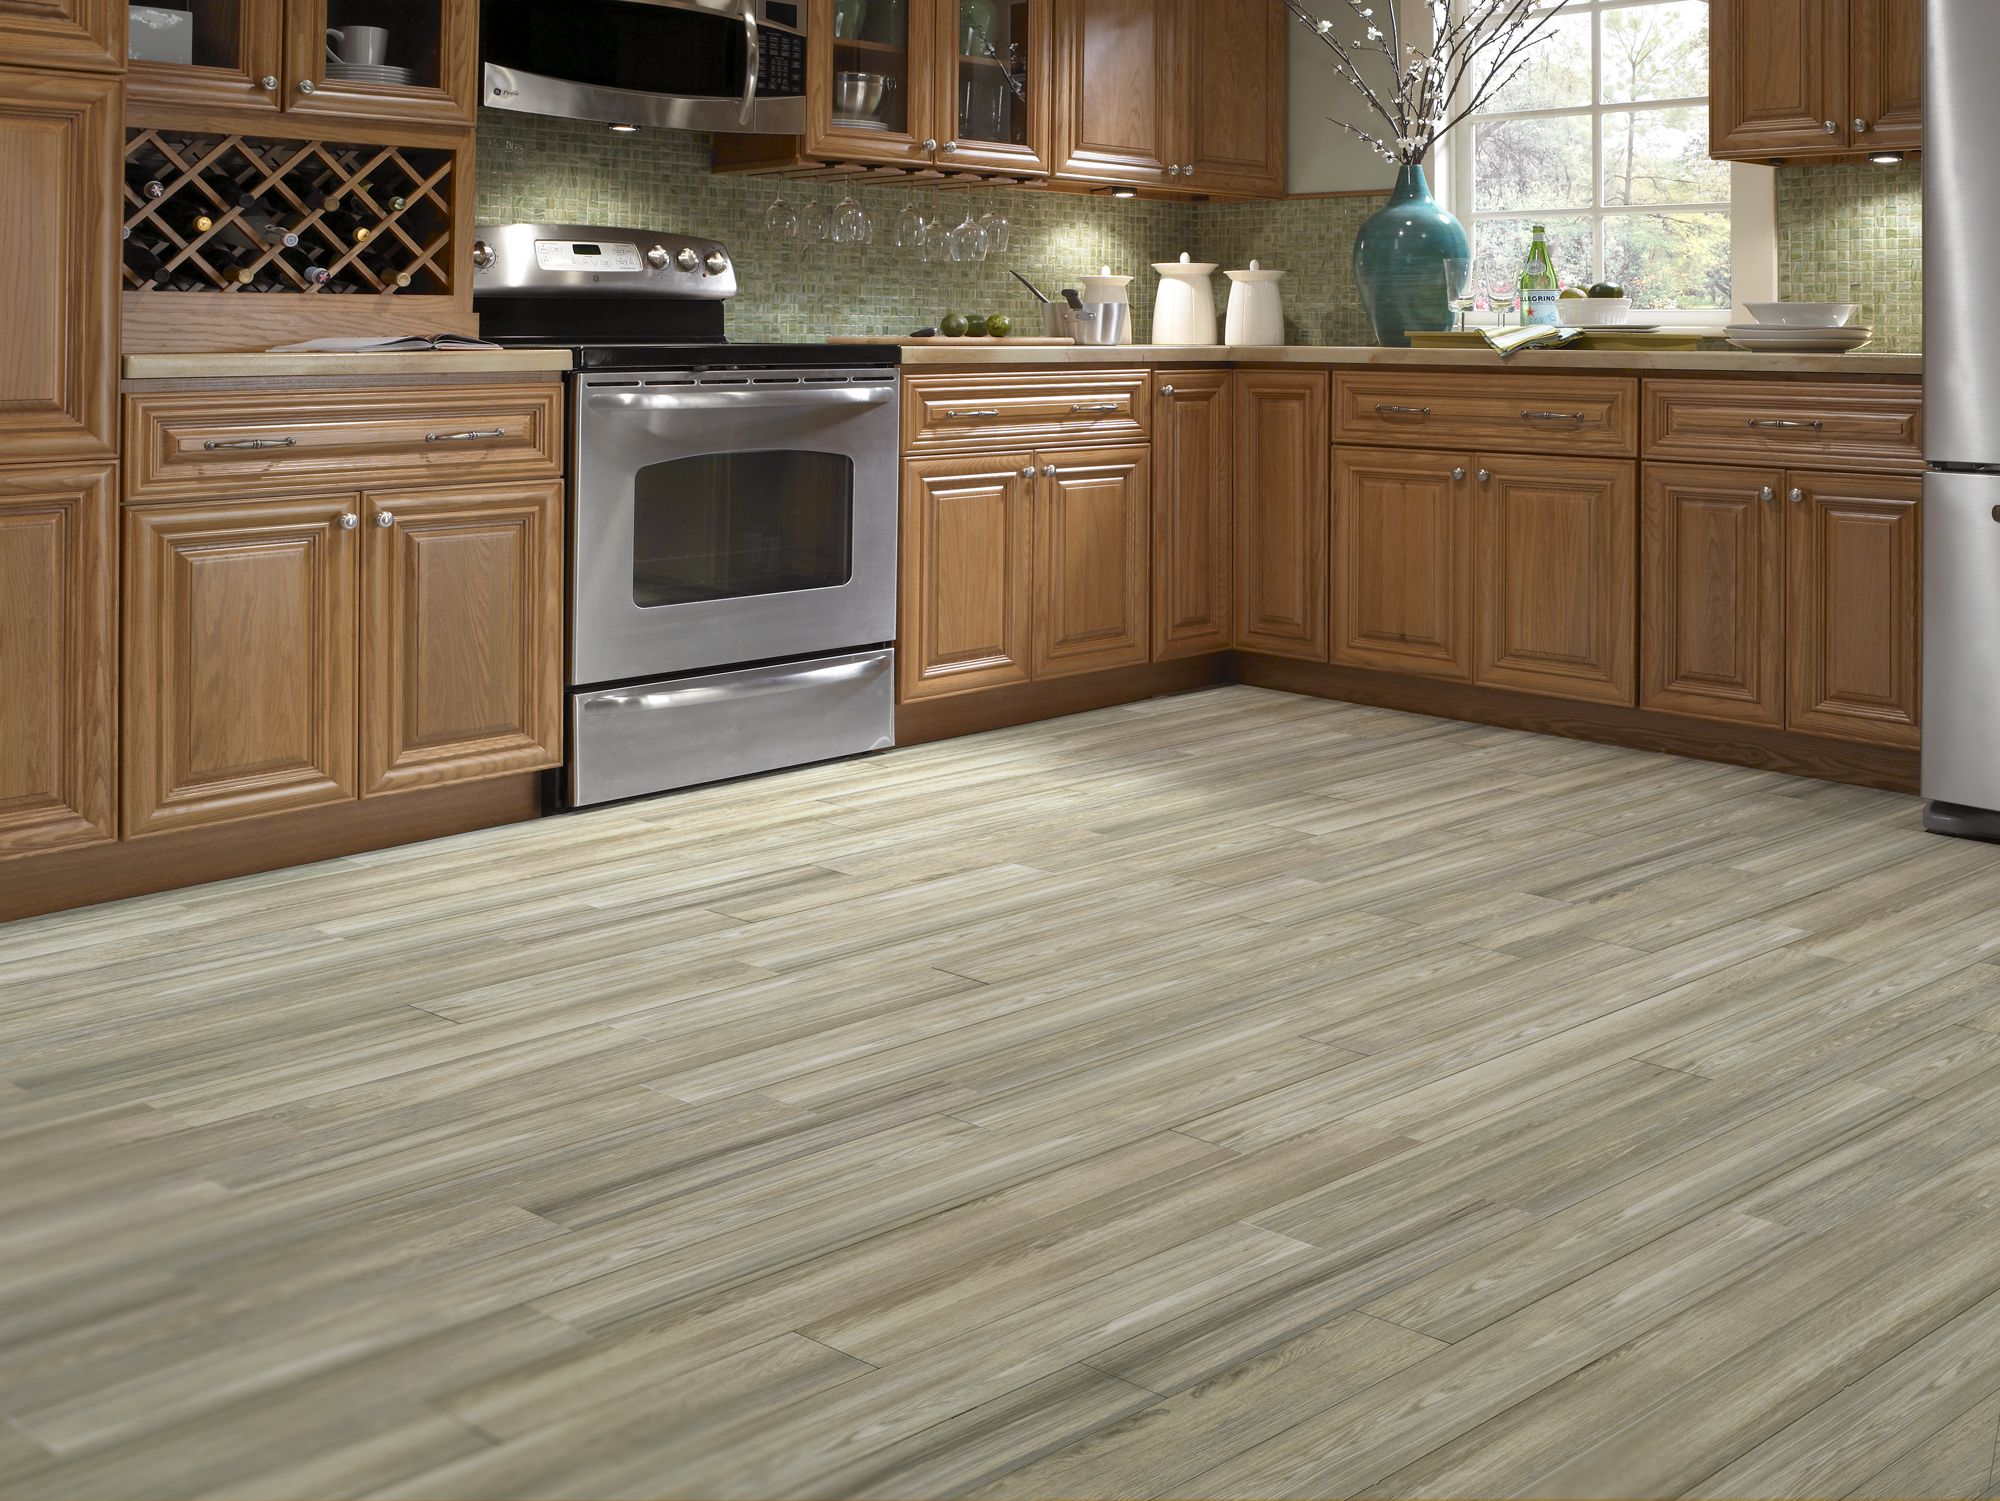 Cottage Wood Ash Porcelain Look Tile Kitchen